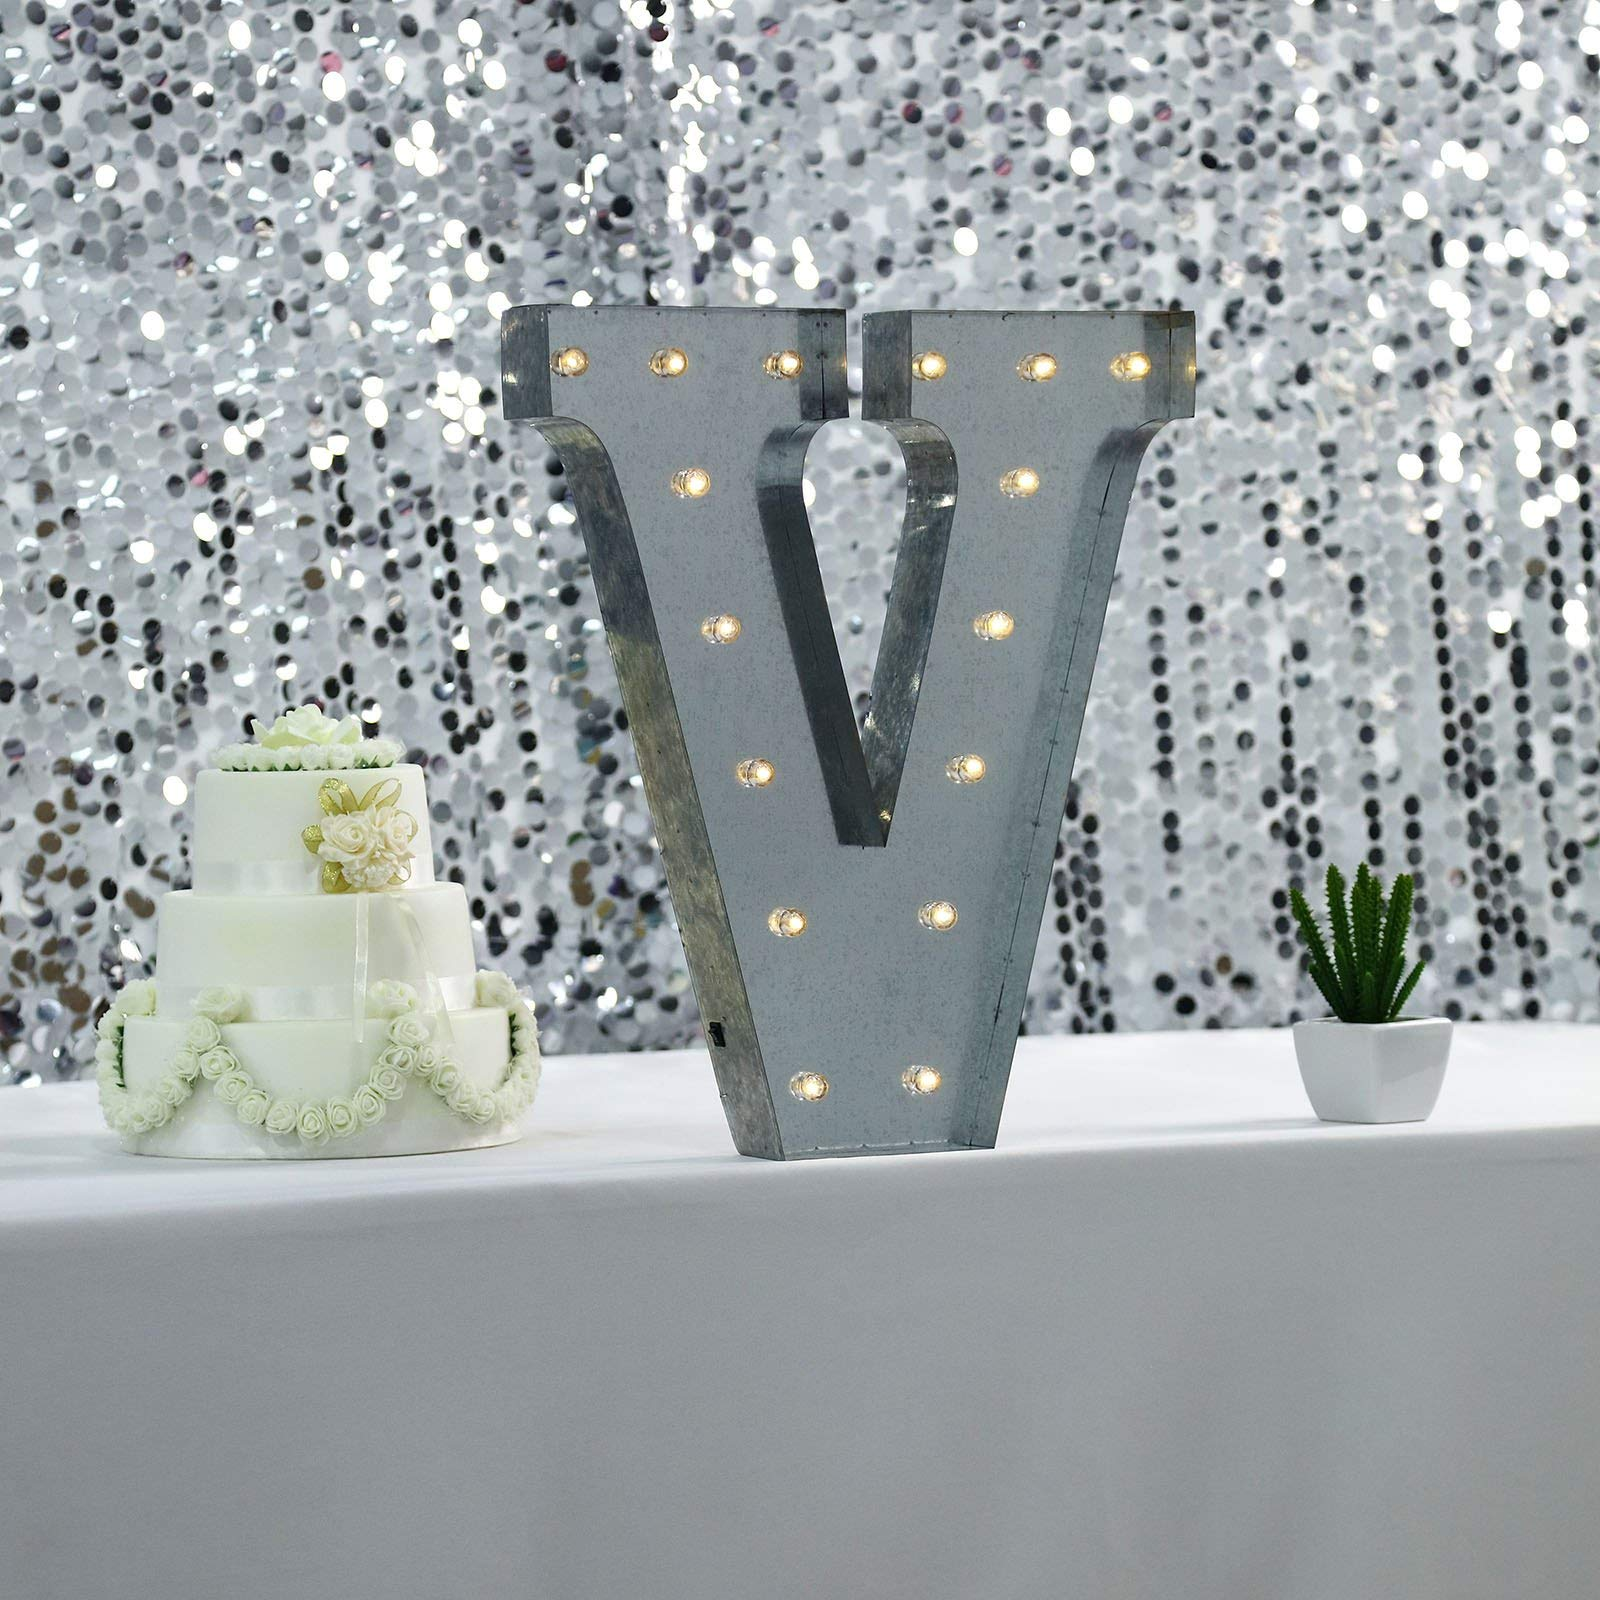 Tableclothsfactory 2 FT   Vintage Metal Marquee Letter Lights Cordless with 16 Warm White LED - V by Tableclothsfactory